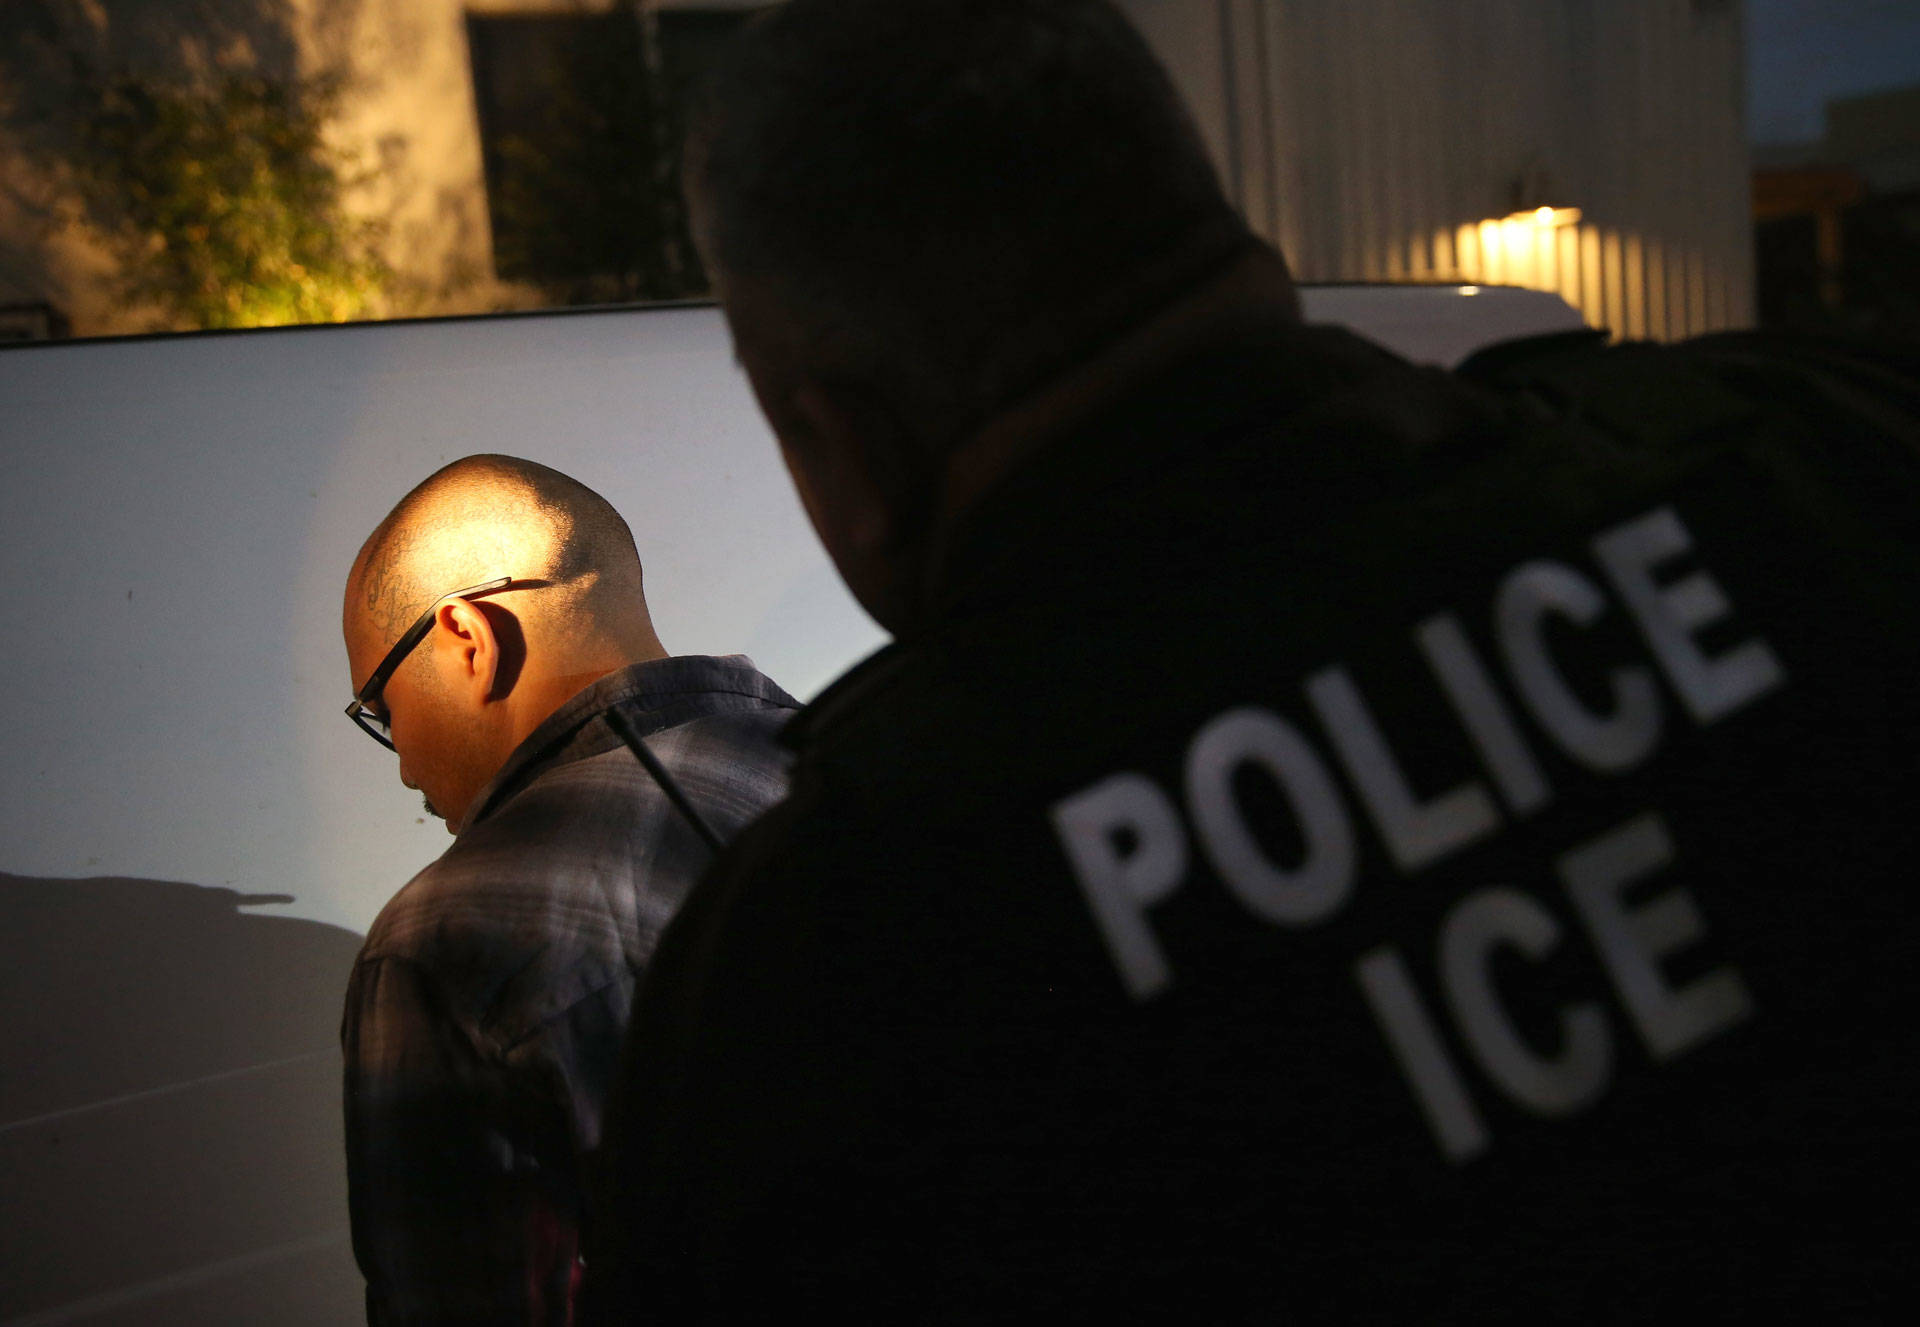 A man is detained by Immigration and Customs Enforcement (ICE) agents in October 2015 in Los Angeles John Moore/Getty Images